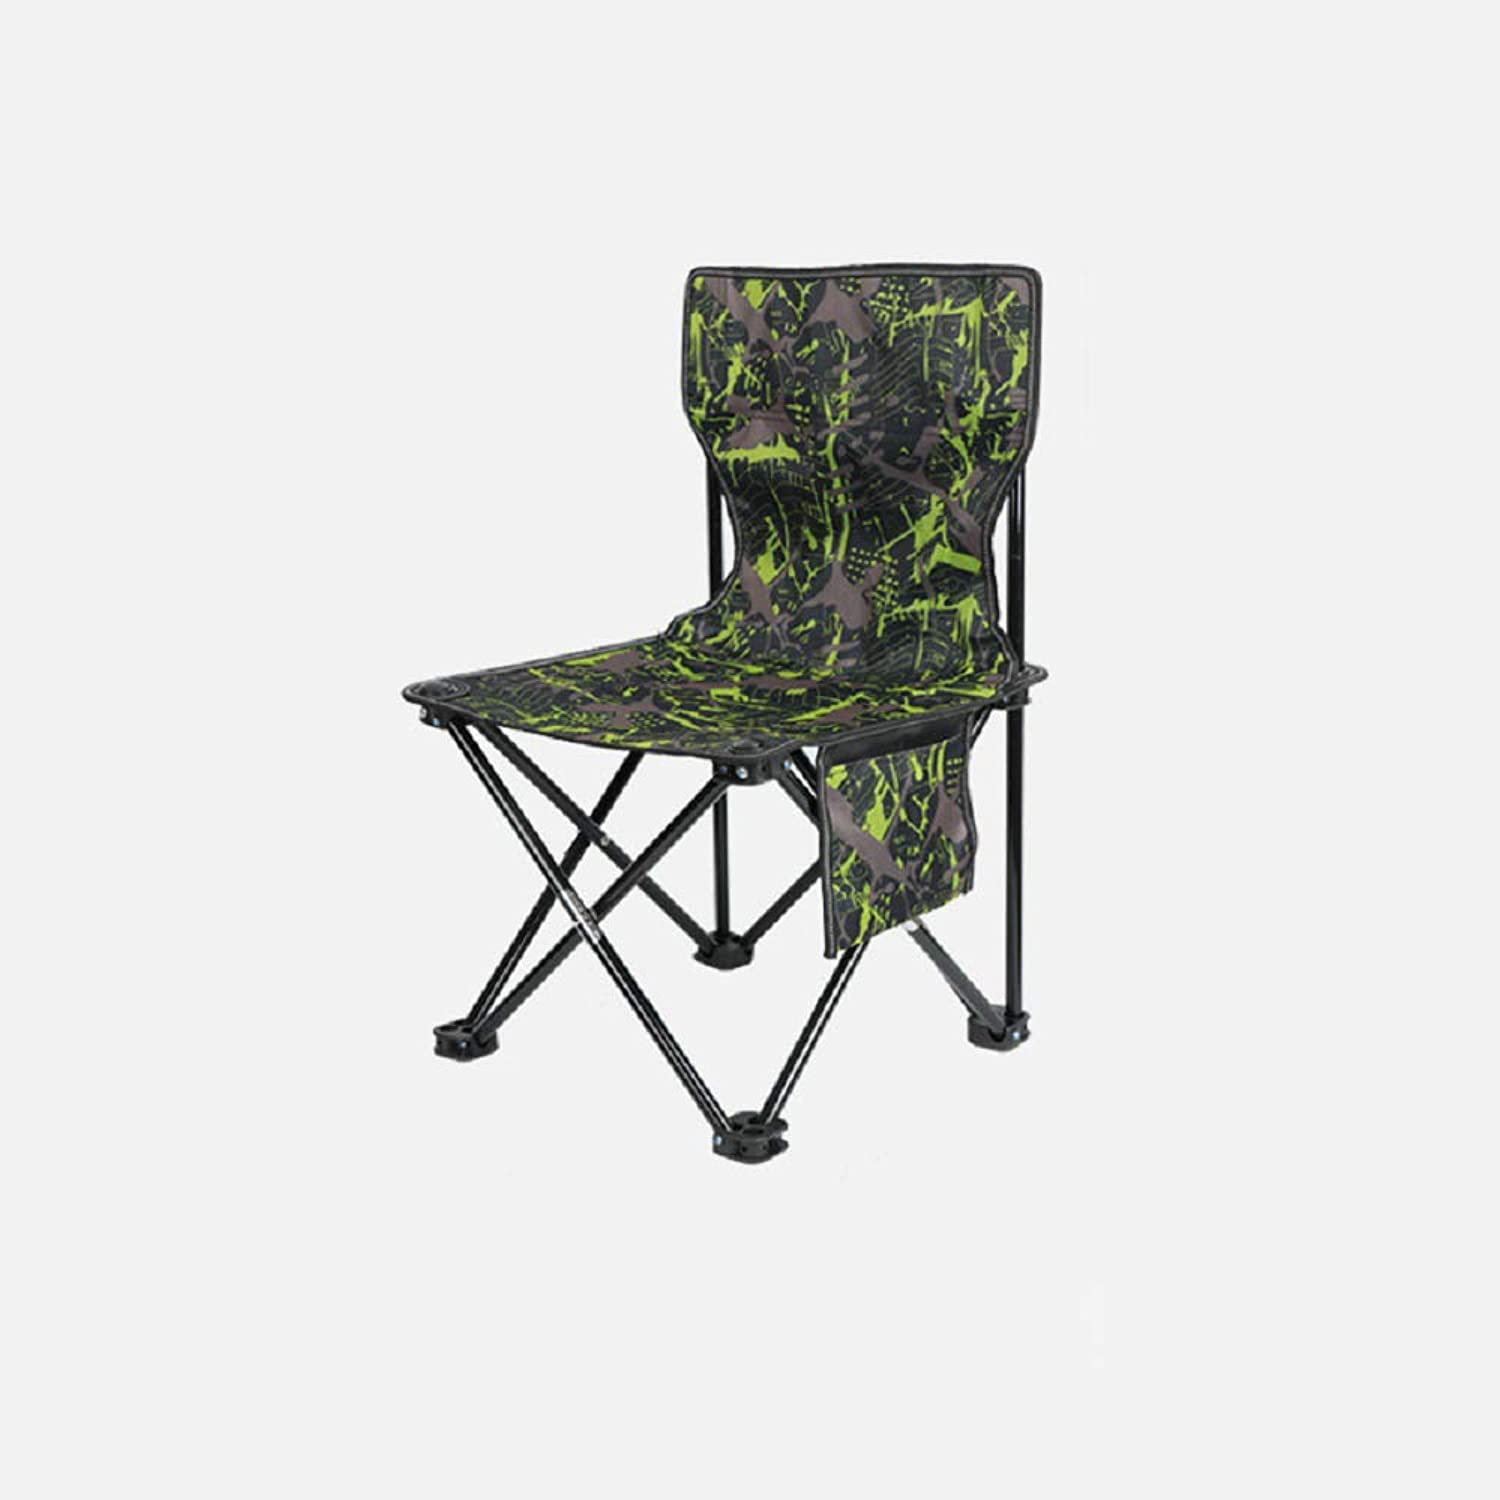 Outdoor Folding Chair Train Small Mazar Art Sketch Chair Oxford Cloth Material Comfortable and Durable Very Suitable for Camp Travel Beach Barbecue and Other Outdoor Activities,camouflagegreen